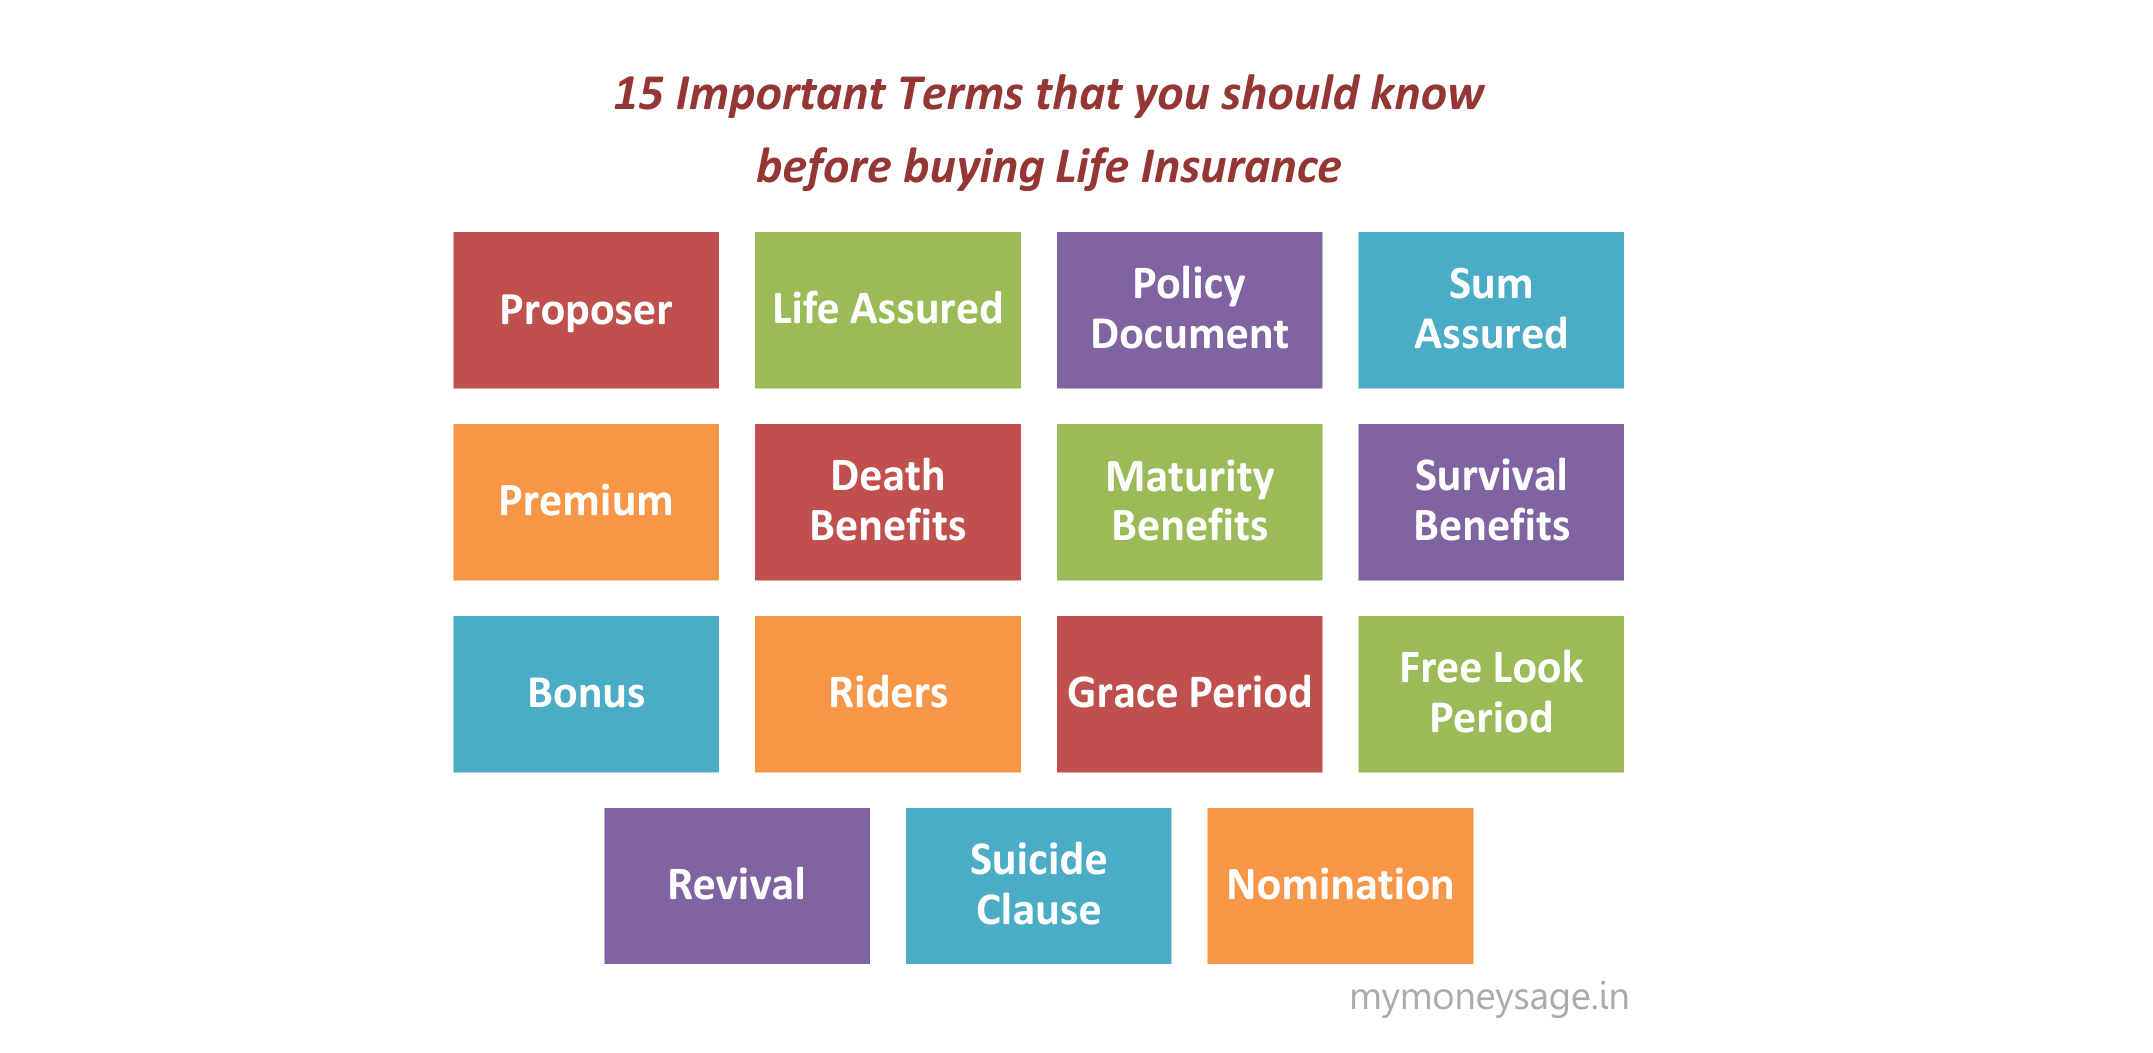 15 Important terms that you should know before buying Life Insurance